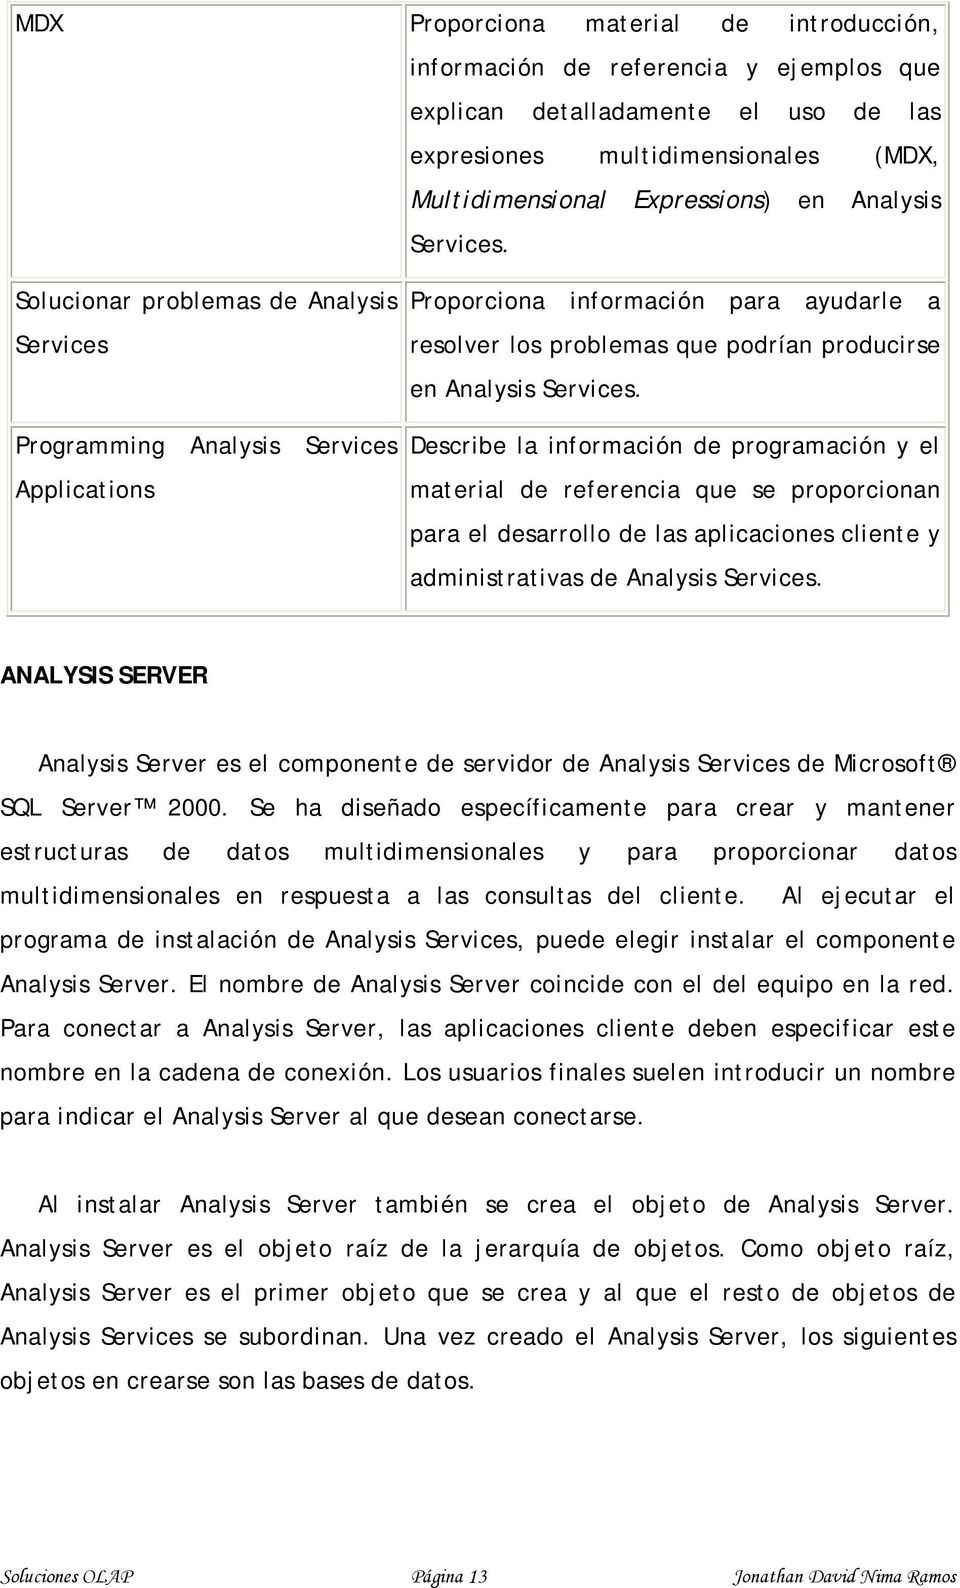 Solucionar problemas de Analysis Services Programming Analysis Services Applications Proporciona información para ayudarle a resolver los problemas que podrían producirse en Analysis  Describe la